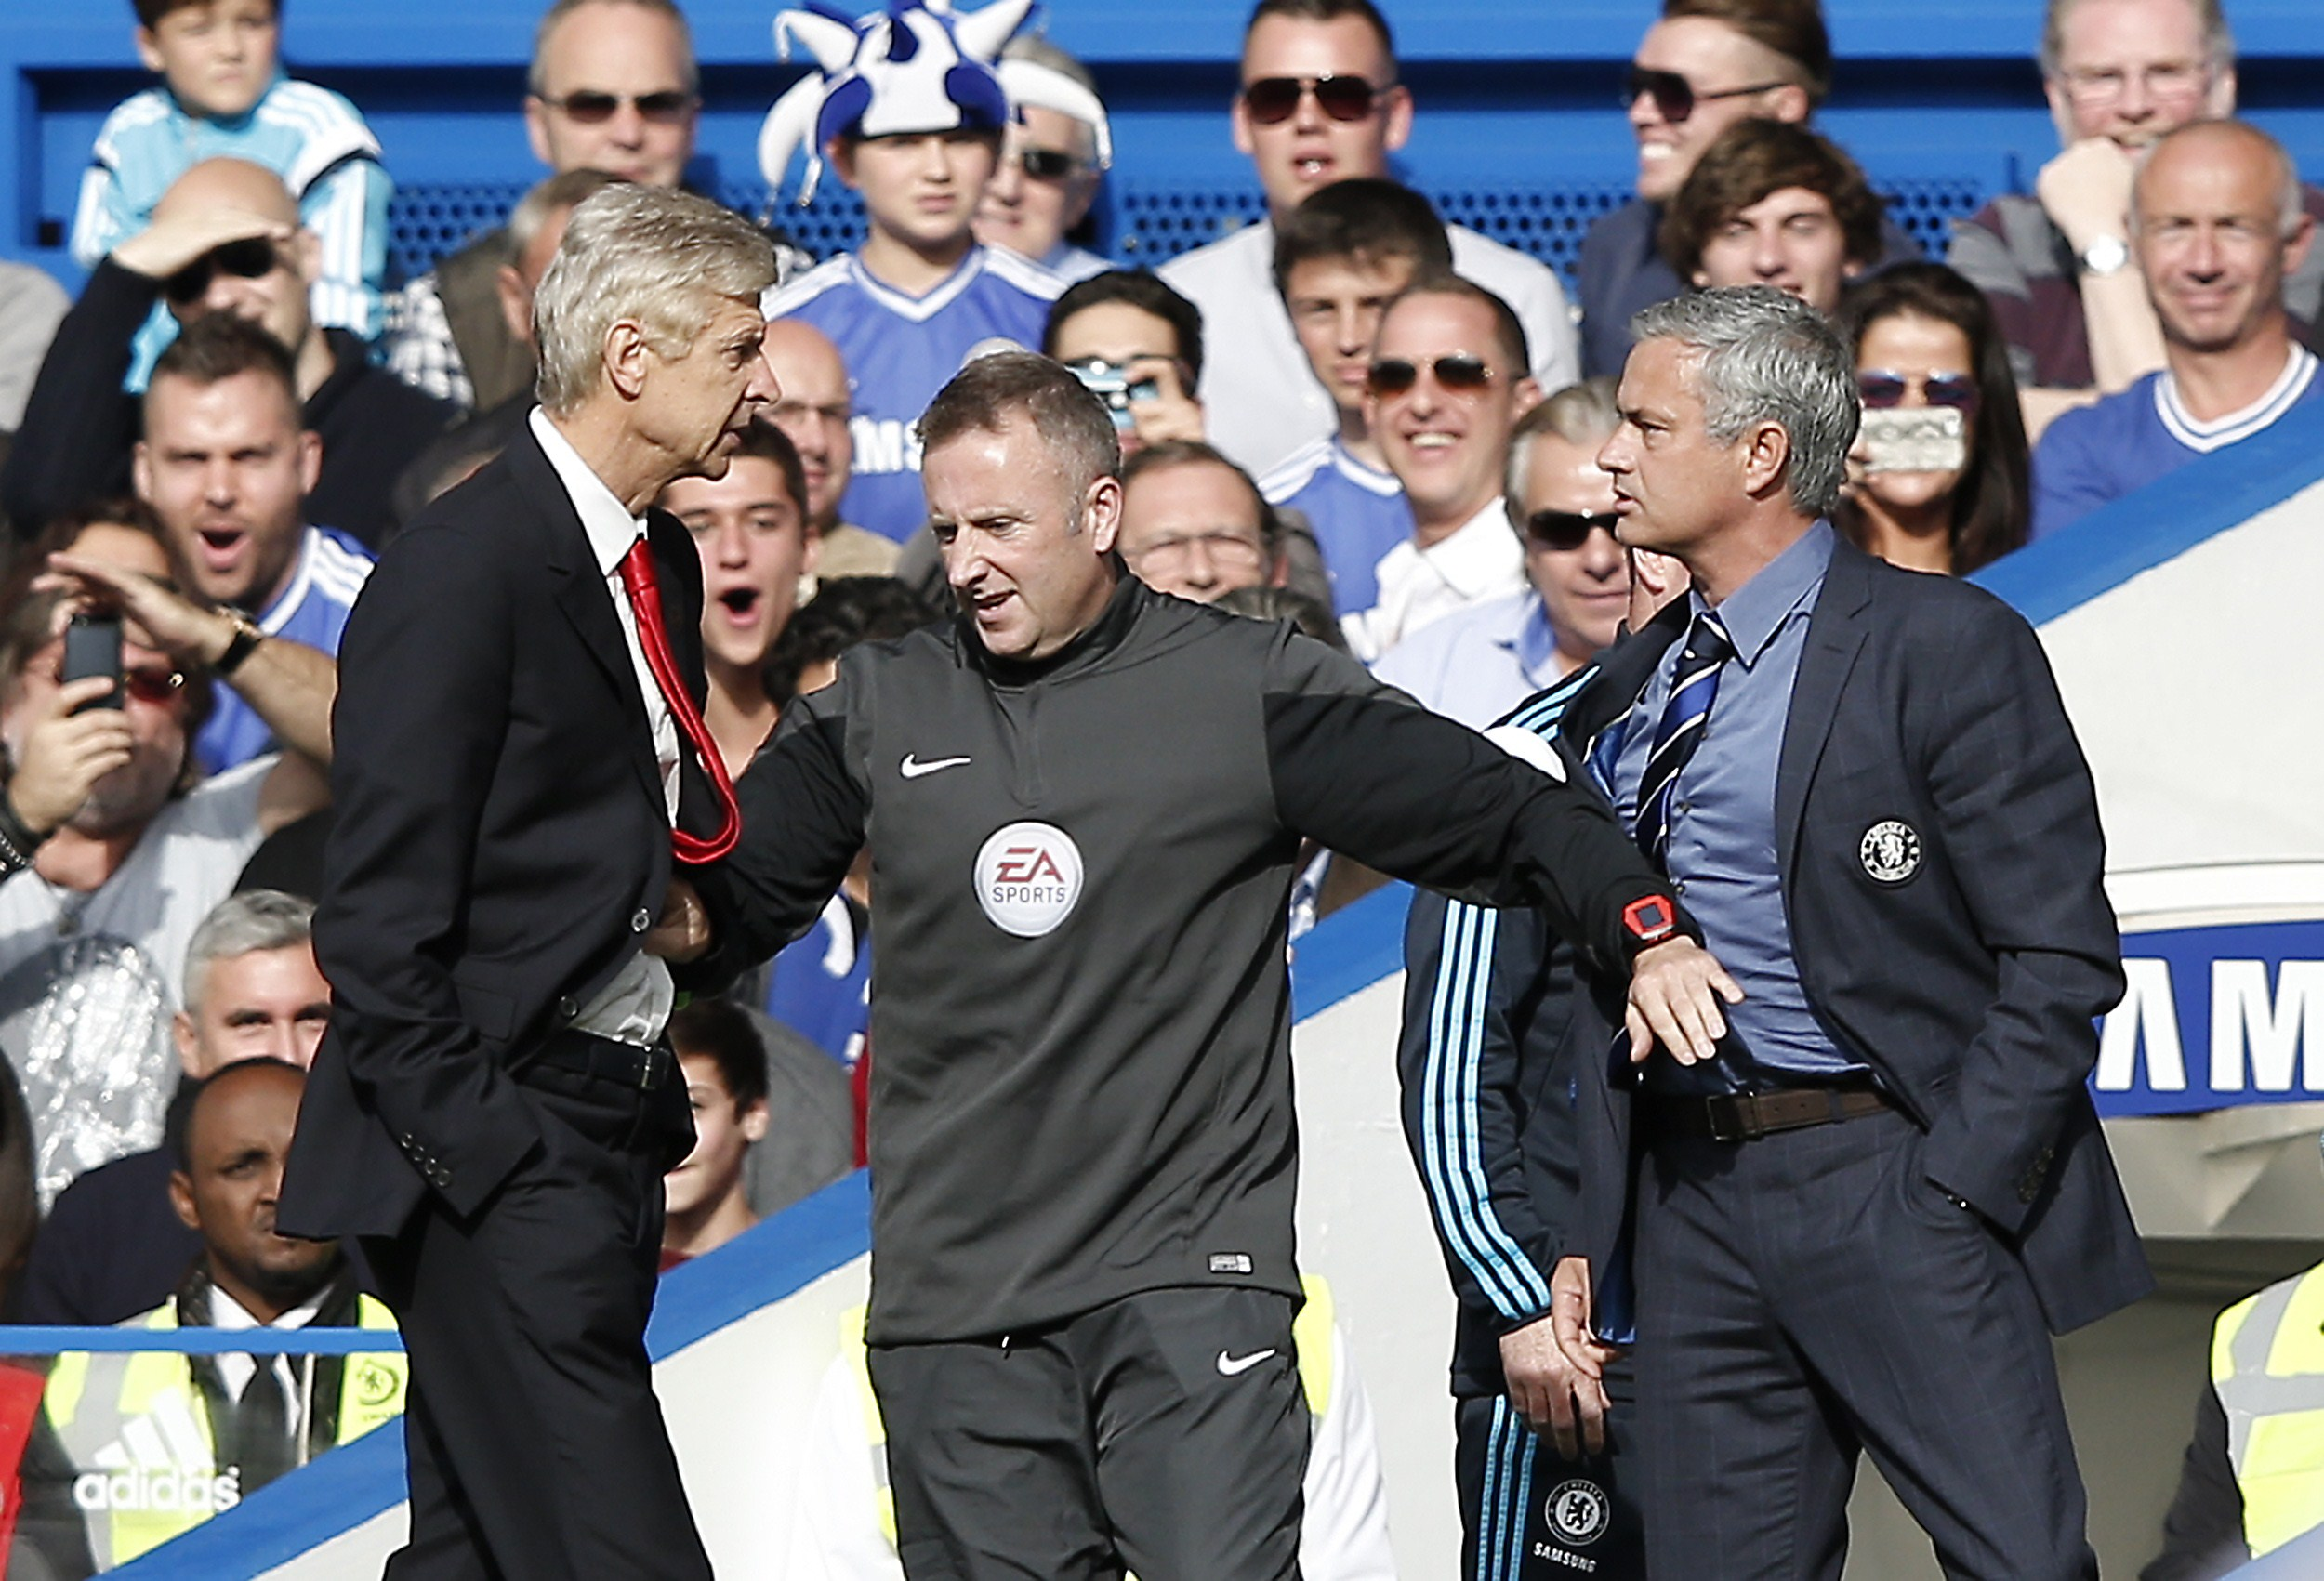 """Chelsea's Portuguese manager Jose Mourinho (R) and Arsenal's French manager Arsene Wenger (L) are kept apart by the fourth official Jonathan Moss during the English Premier League football match between Chelsea and Arsenal at Stamford Bridge in London on October 5, 2014. AFP PHOTO/ADRIAN DENNIS == RESTRICTED TO EDITORIAL USE. NO USE WITH UNAUTHORIZED AUDIO, VIDEO, DATA, FIXTURE LISTS, CLUB/LEAGUE LOGOS OR """"LIVE"""" SERVICES. ONLINE IN-MATCH USE LIMITED TO 45 IMAGES, NO VIDEO EMULATION. NO USE IN BETTING, GAMES OR SINGLE CLUB/LEAGUE/PLAYER PUBLICATIONS. == (Photo credit should read ADRIAN DENNIS/AFP/Getty Images)"""